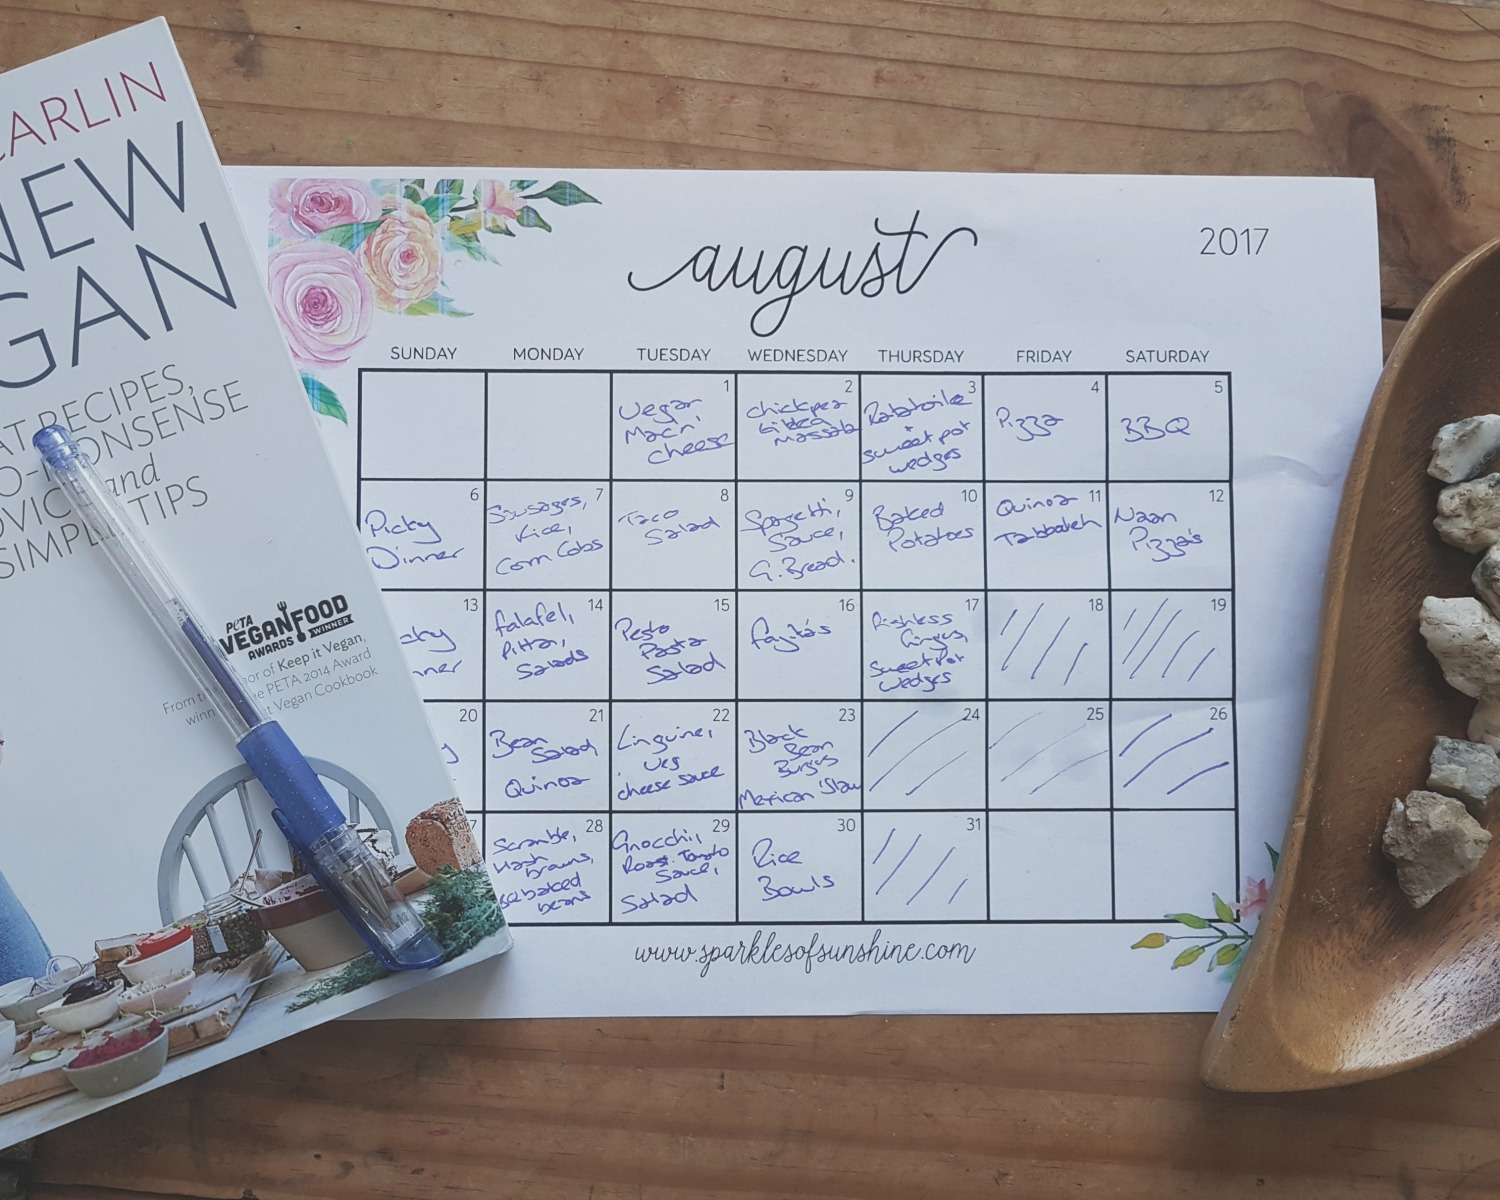 A family meal plan for August